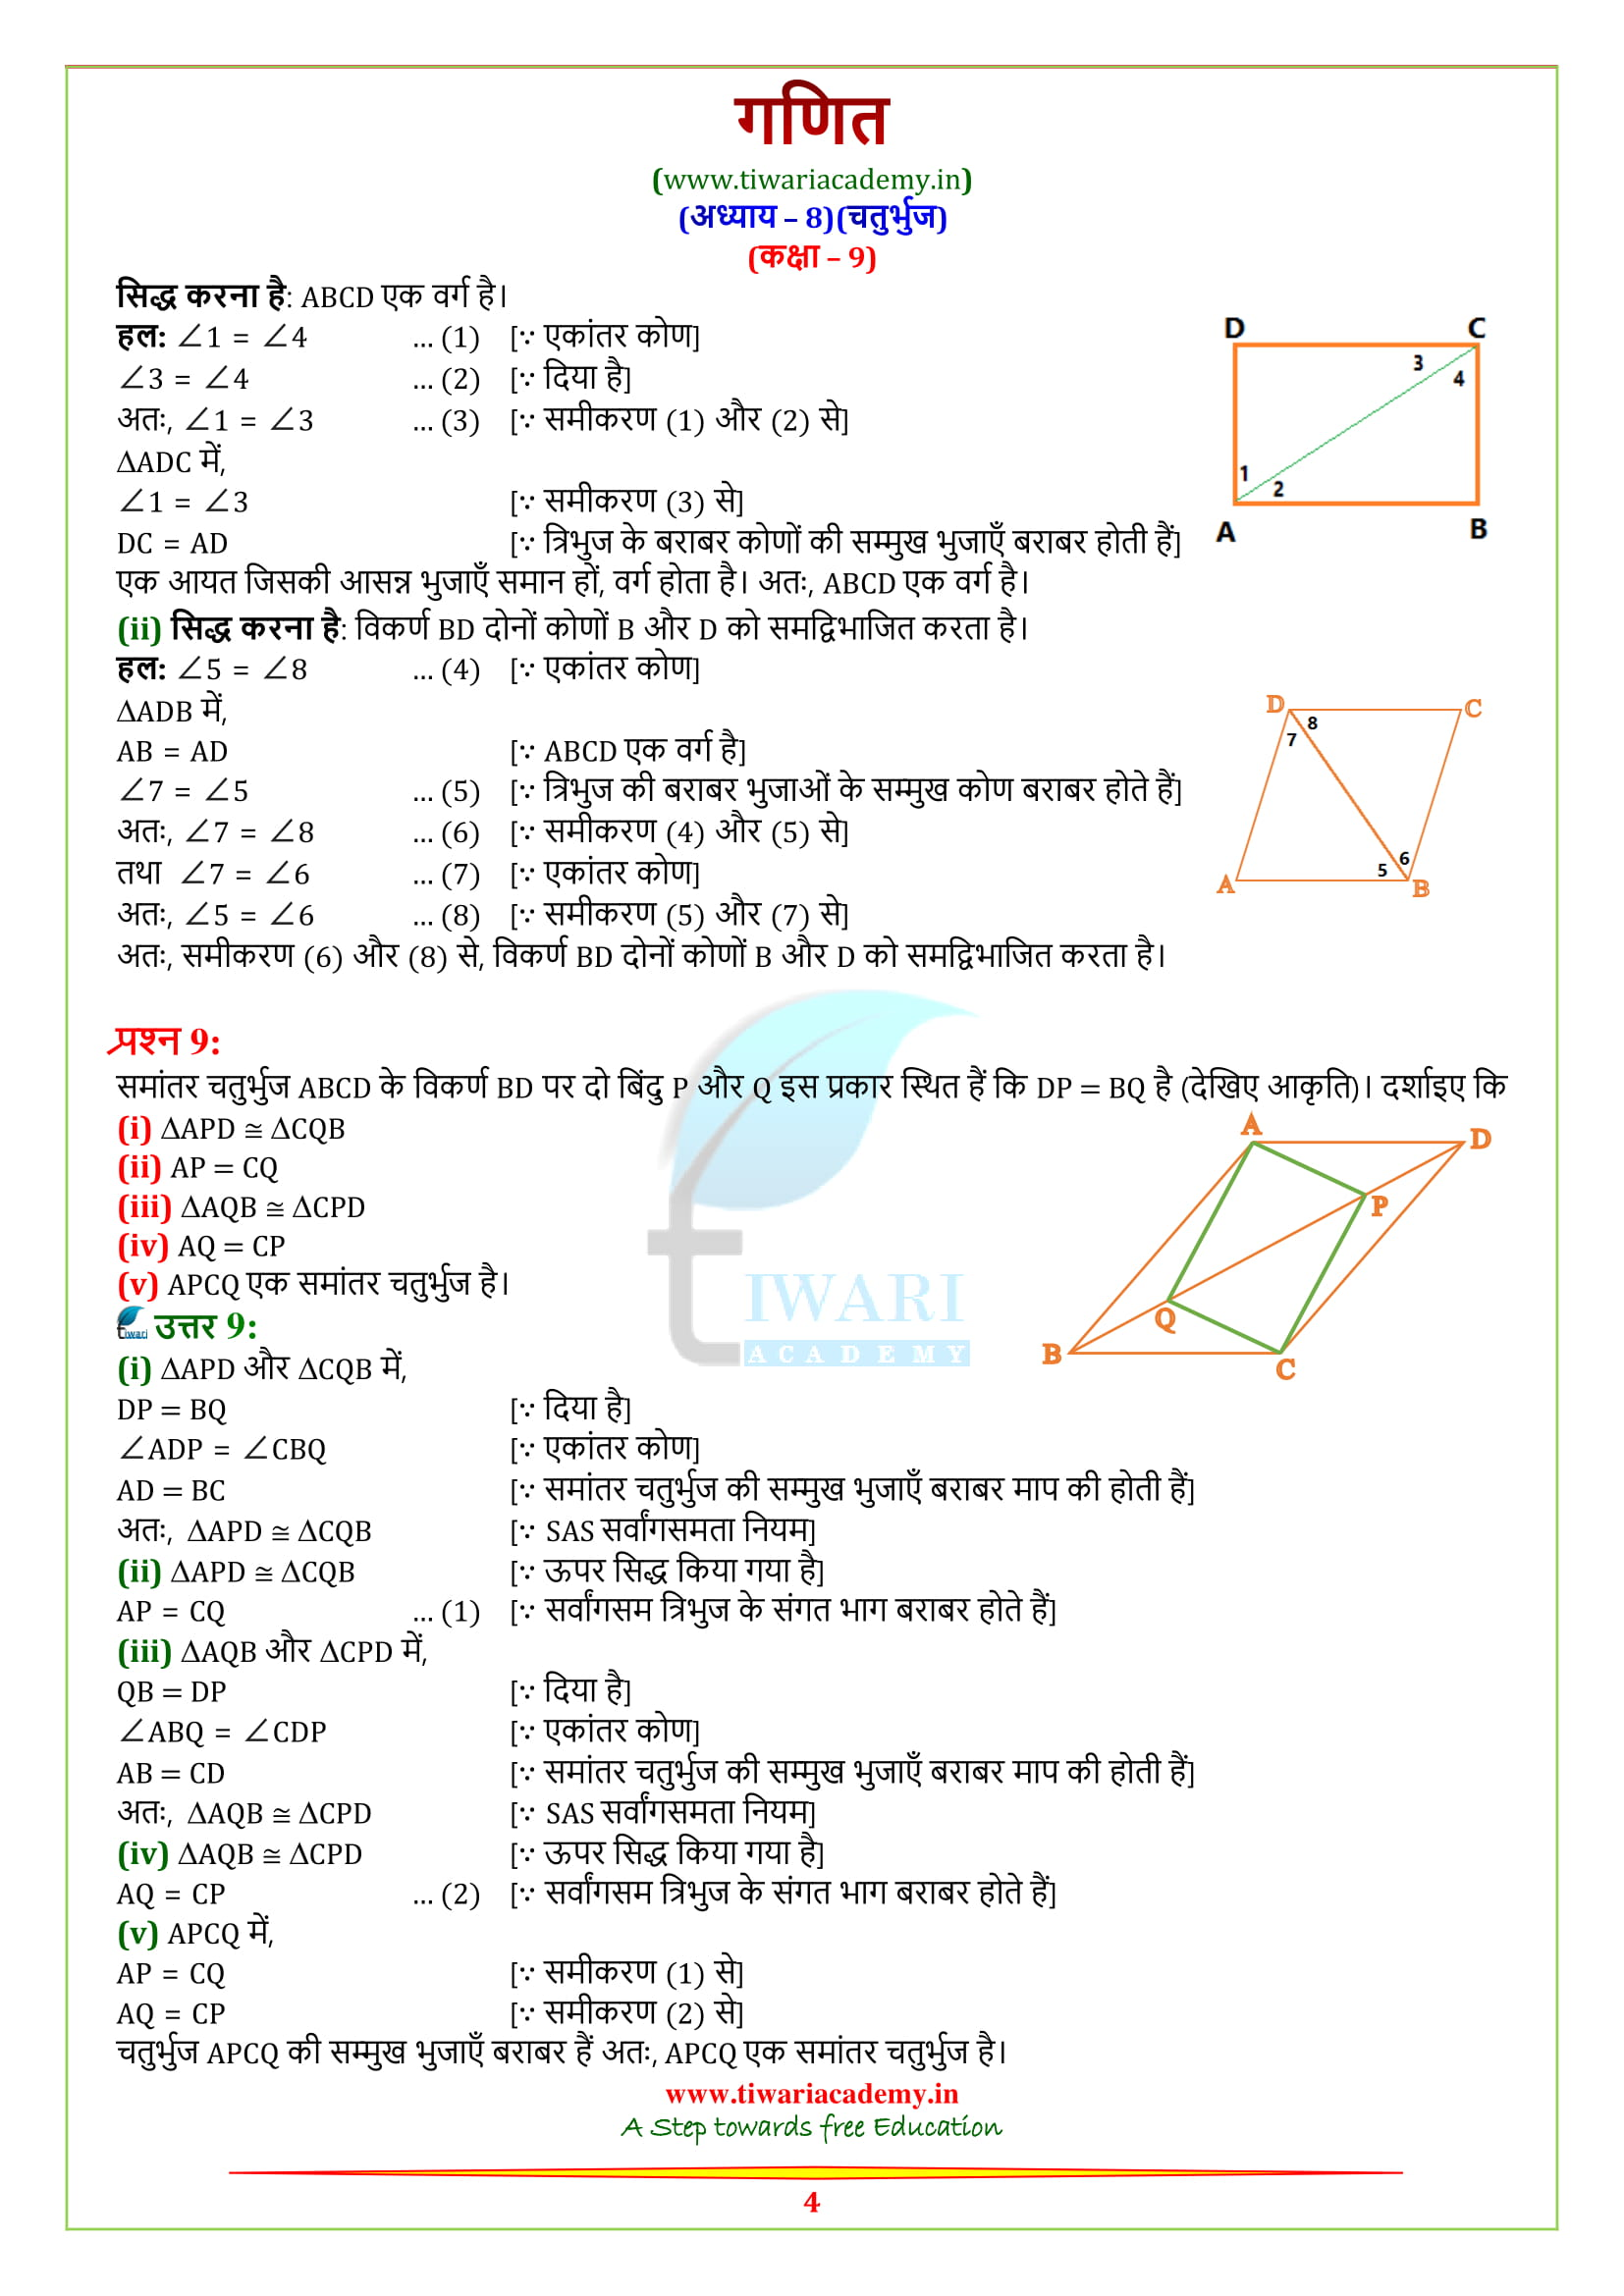 Class 9 Maths Exercise 8.1 solutions updated for 2018-19 exams